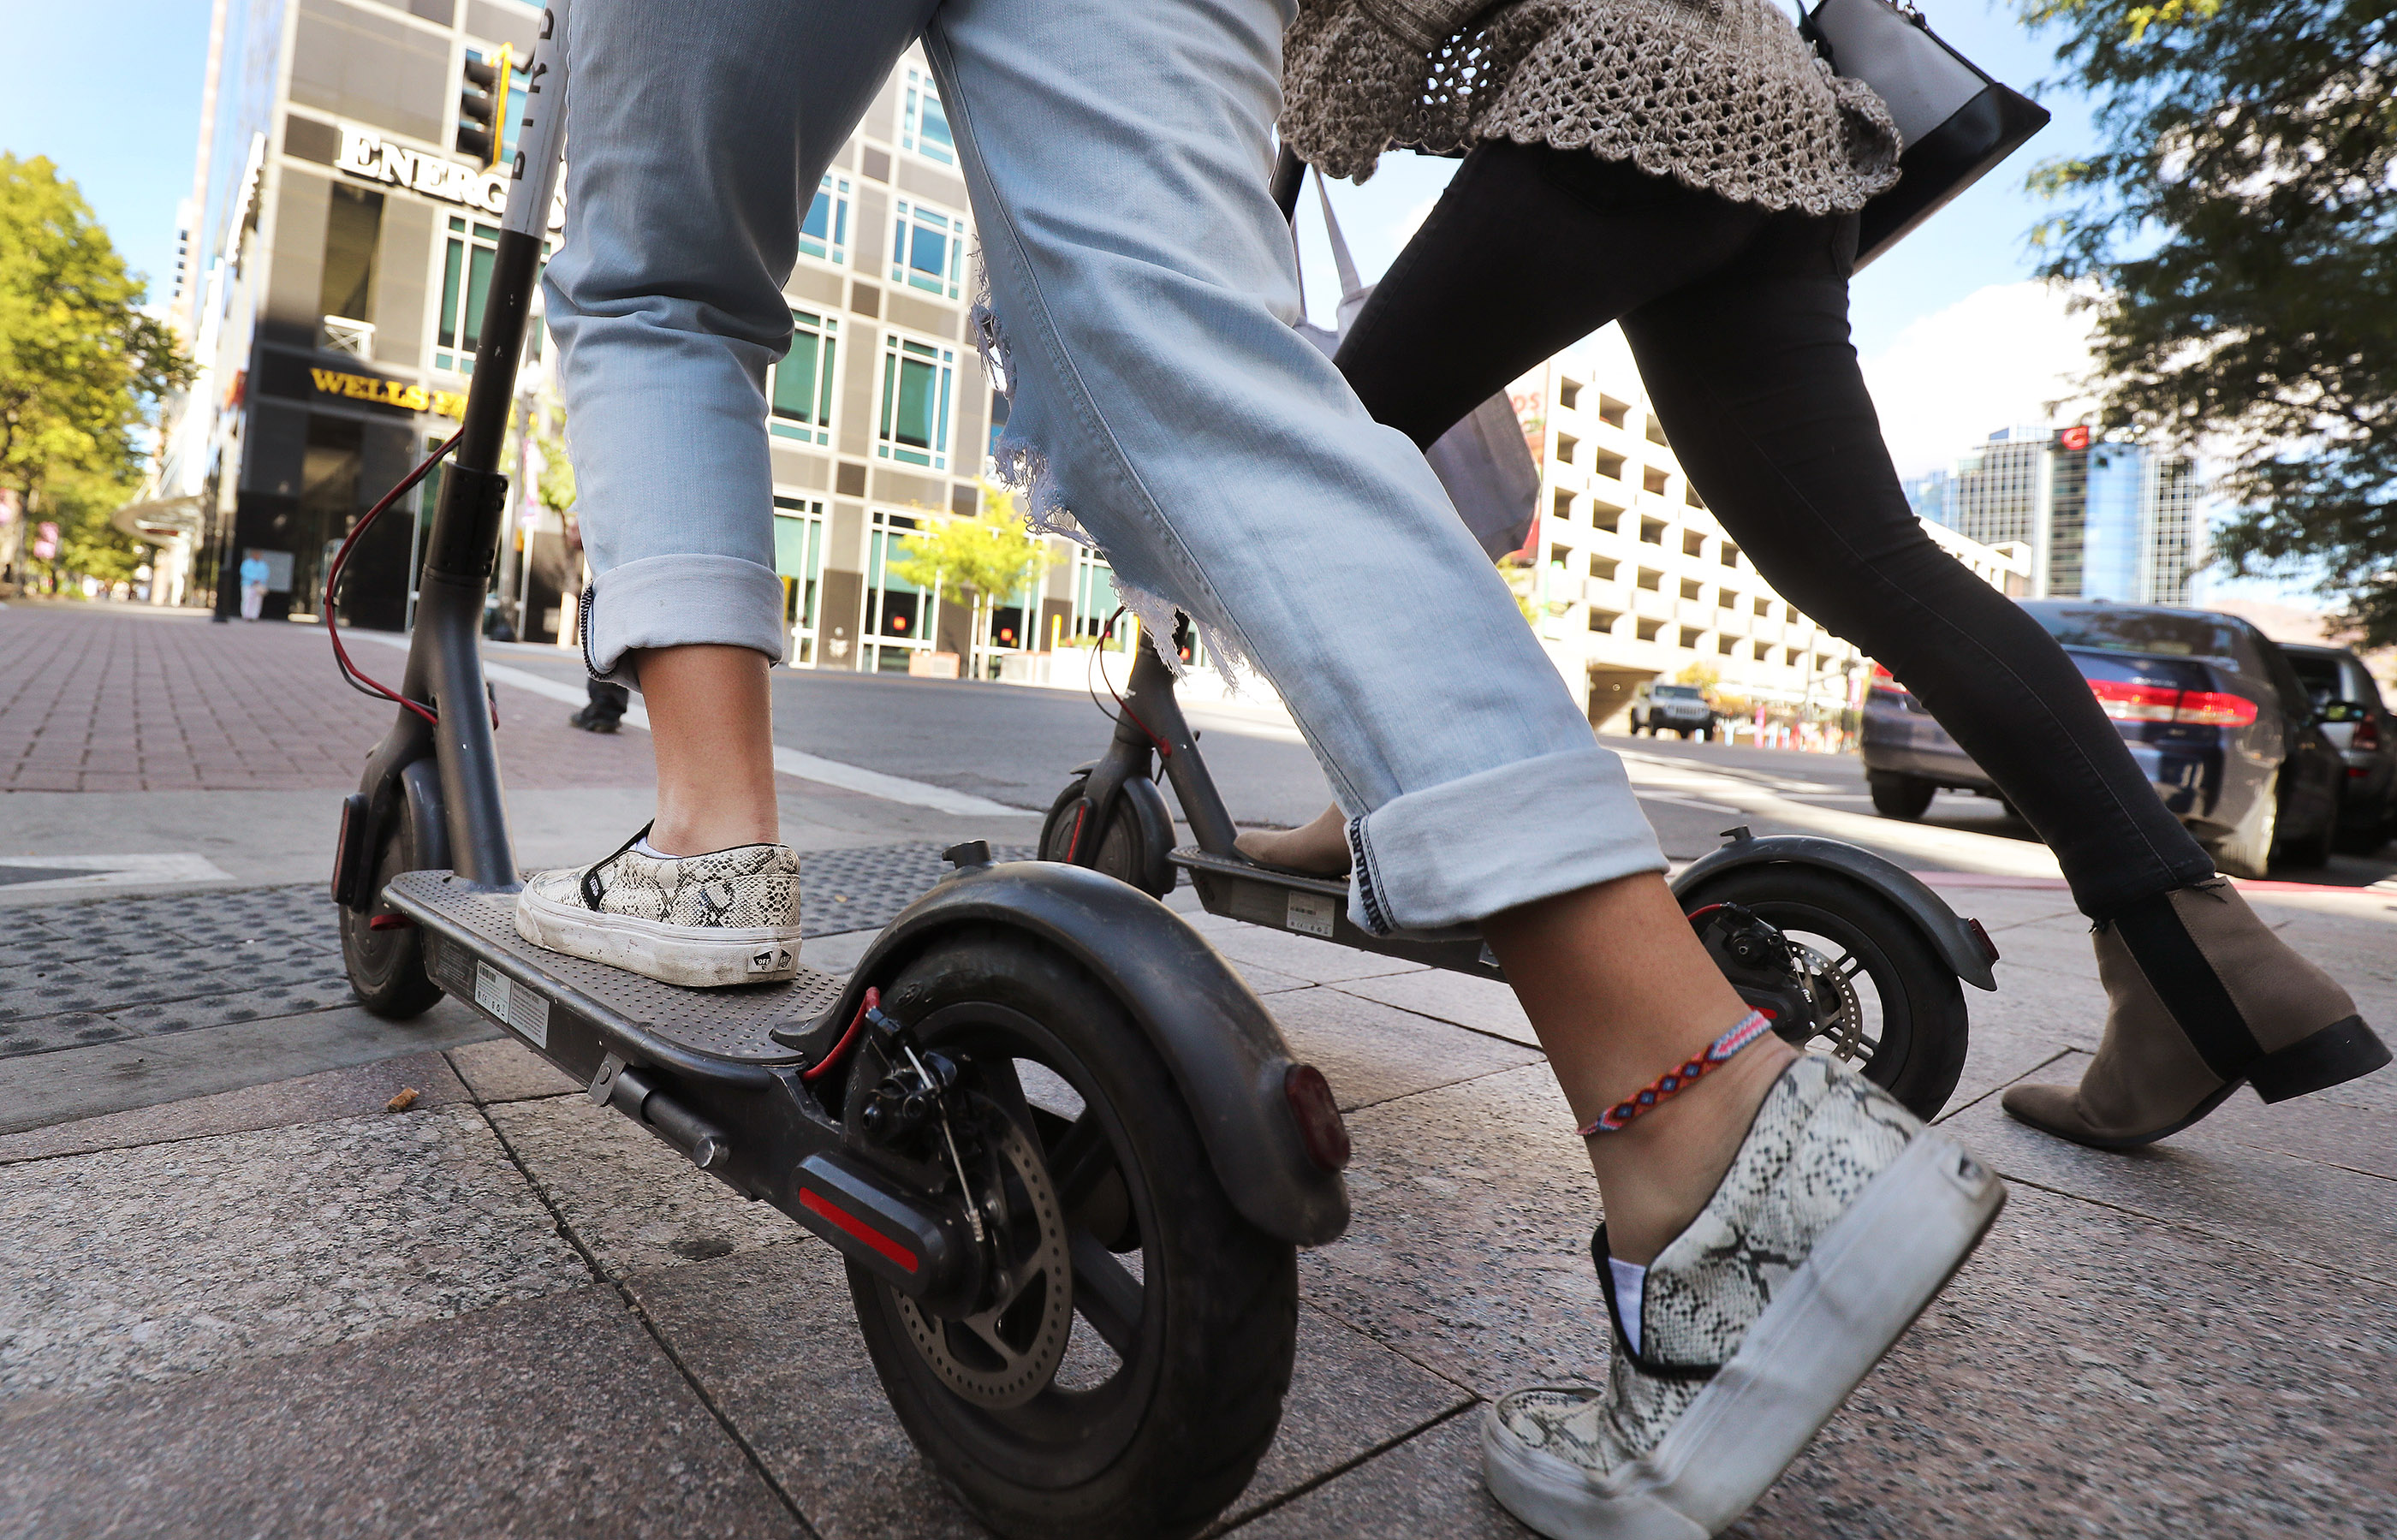 Bird scooters are ridden on Main Street in Salt Lake City on Friday, Oct. 5, 2018.